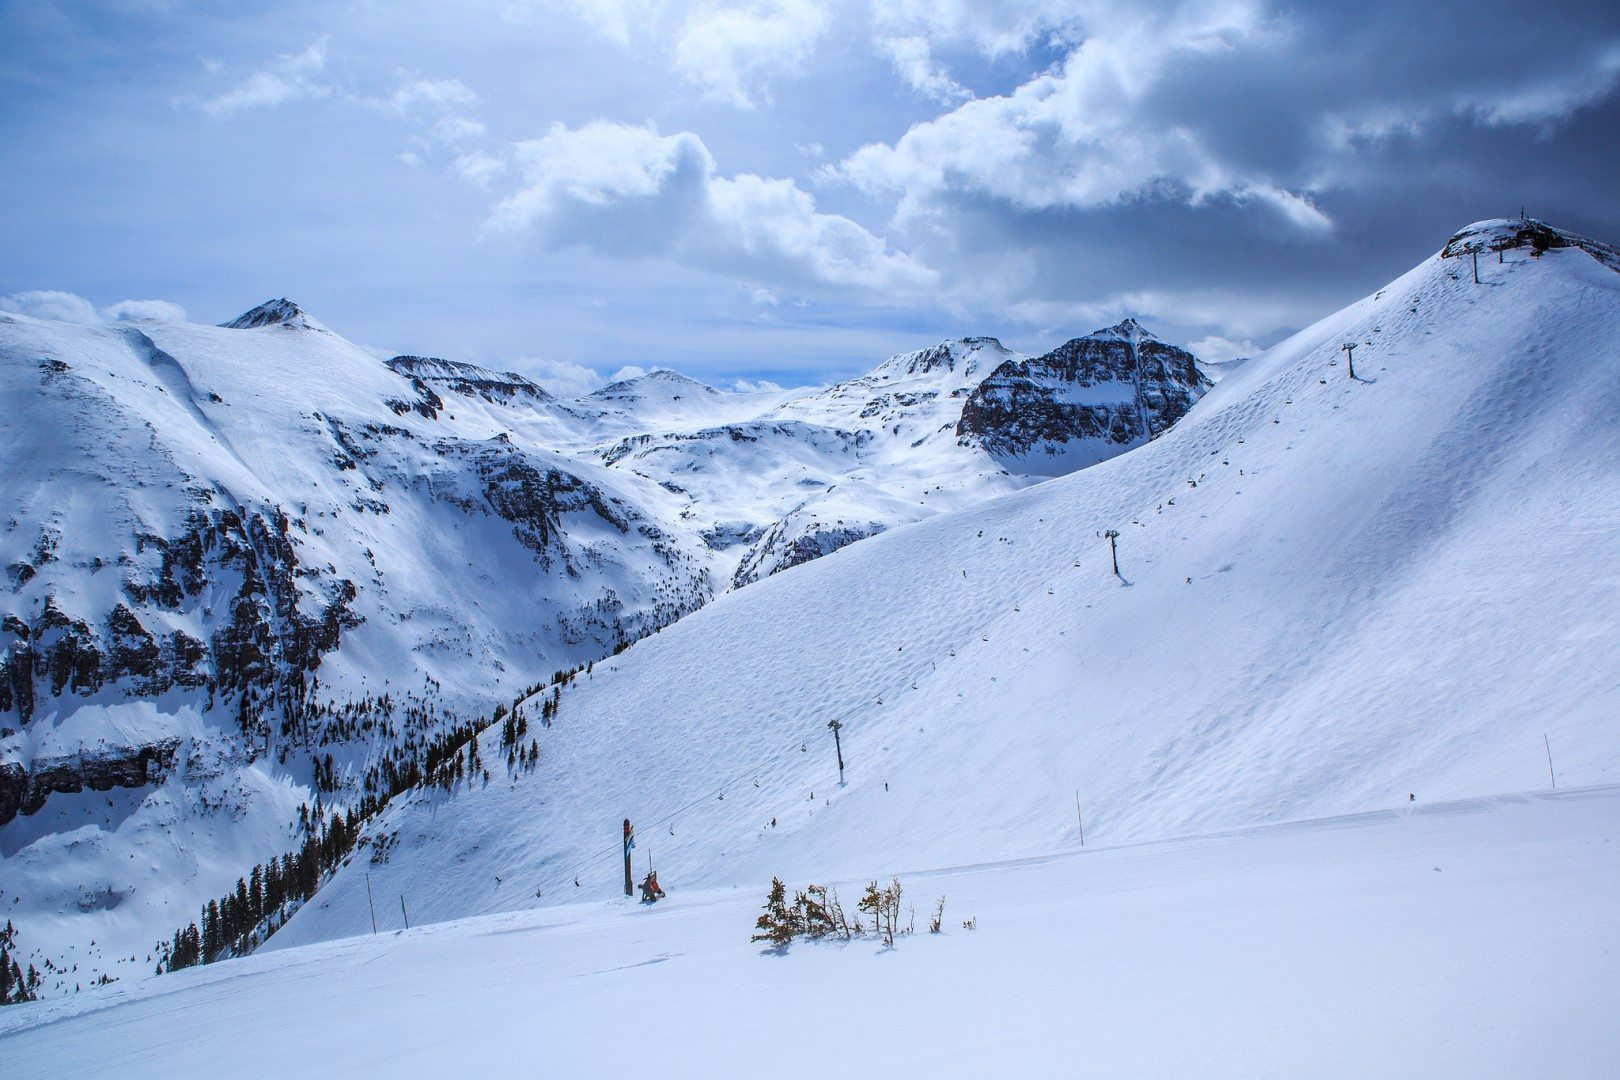 Telluride Ski Resort Photo Credit: Murray Foubister / Flickr